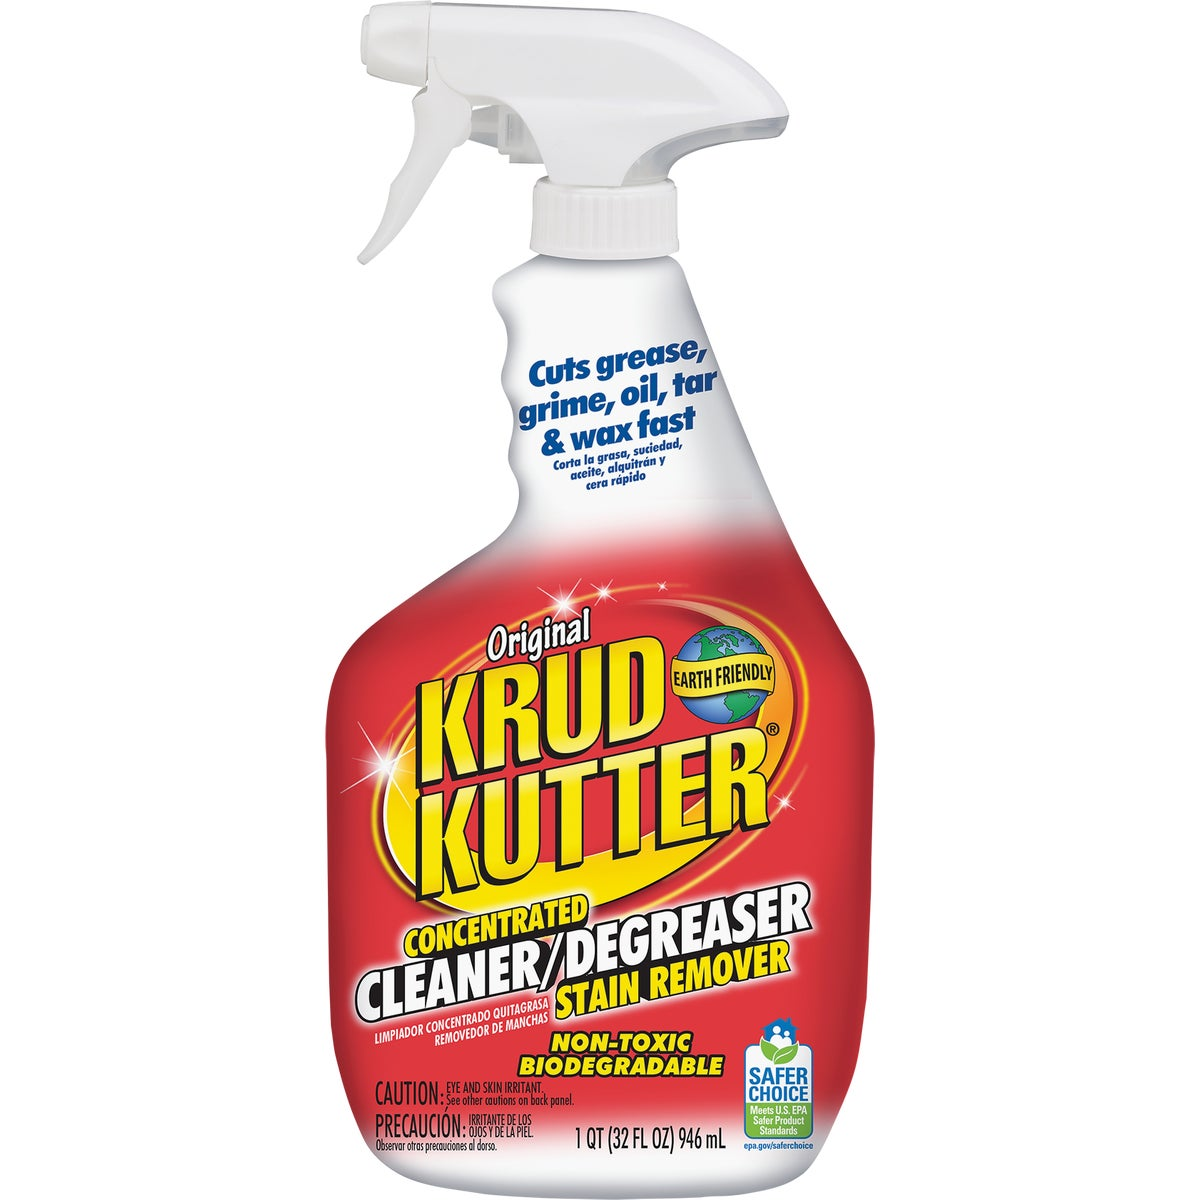 32OZ CLEANER/DEGREASER - KK32/12 by Supreme Chemicals